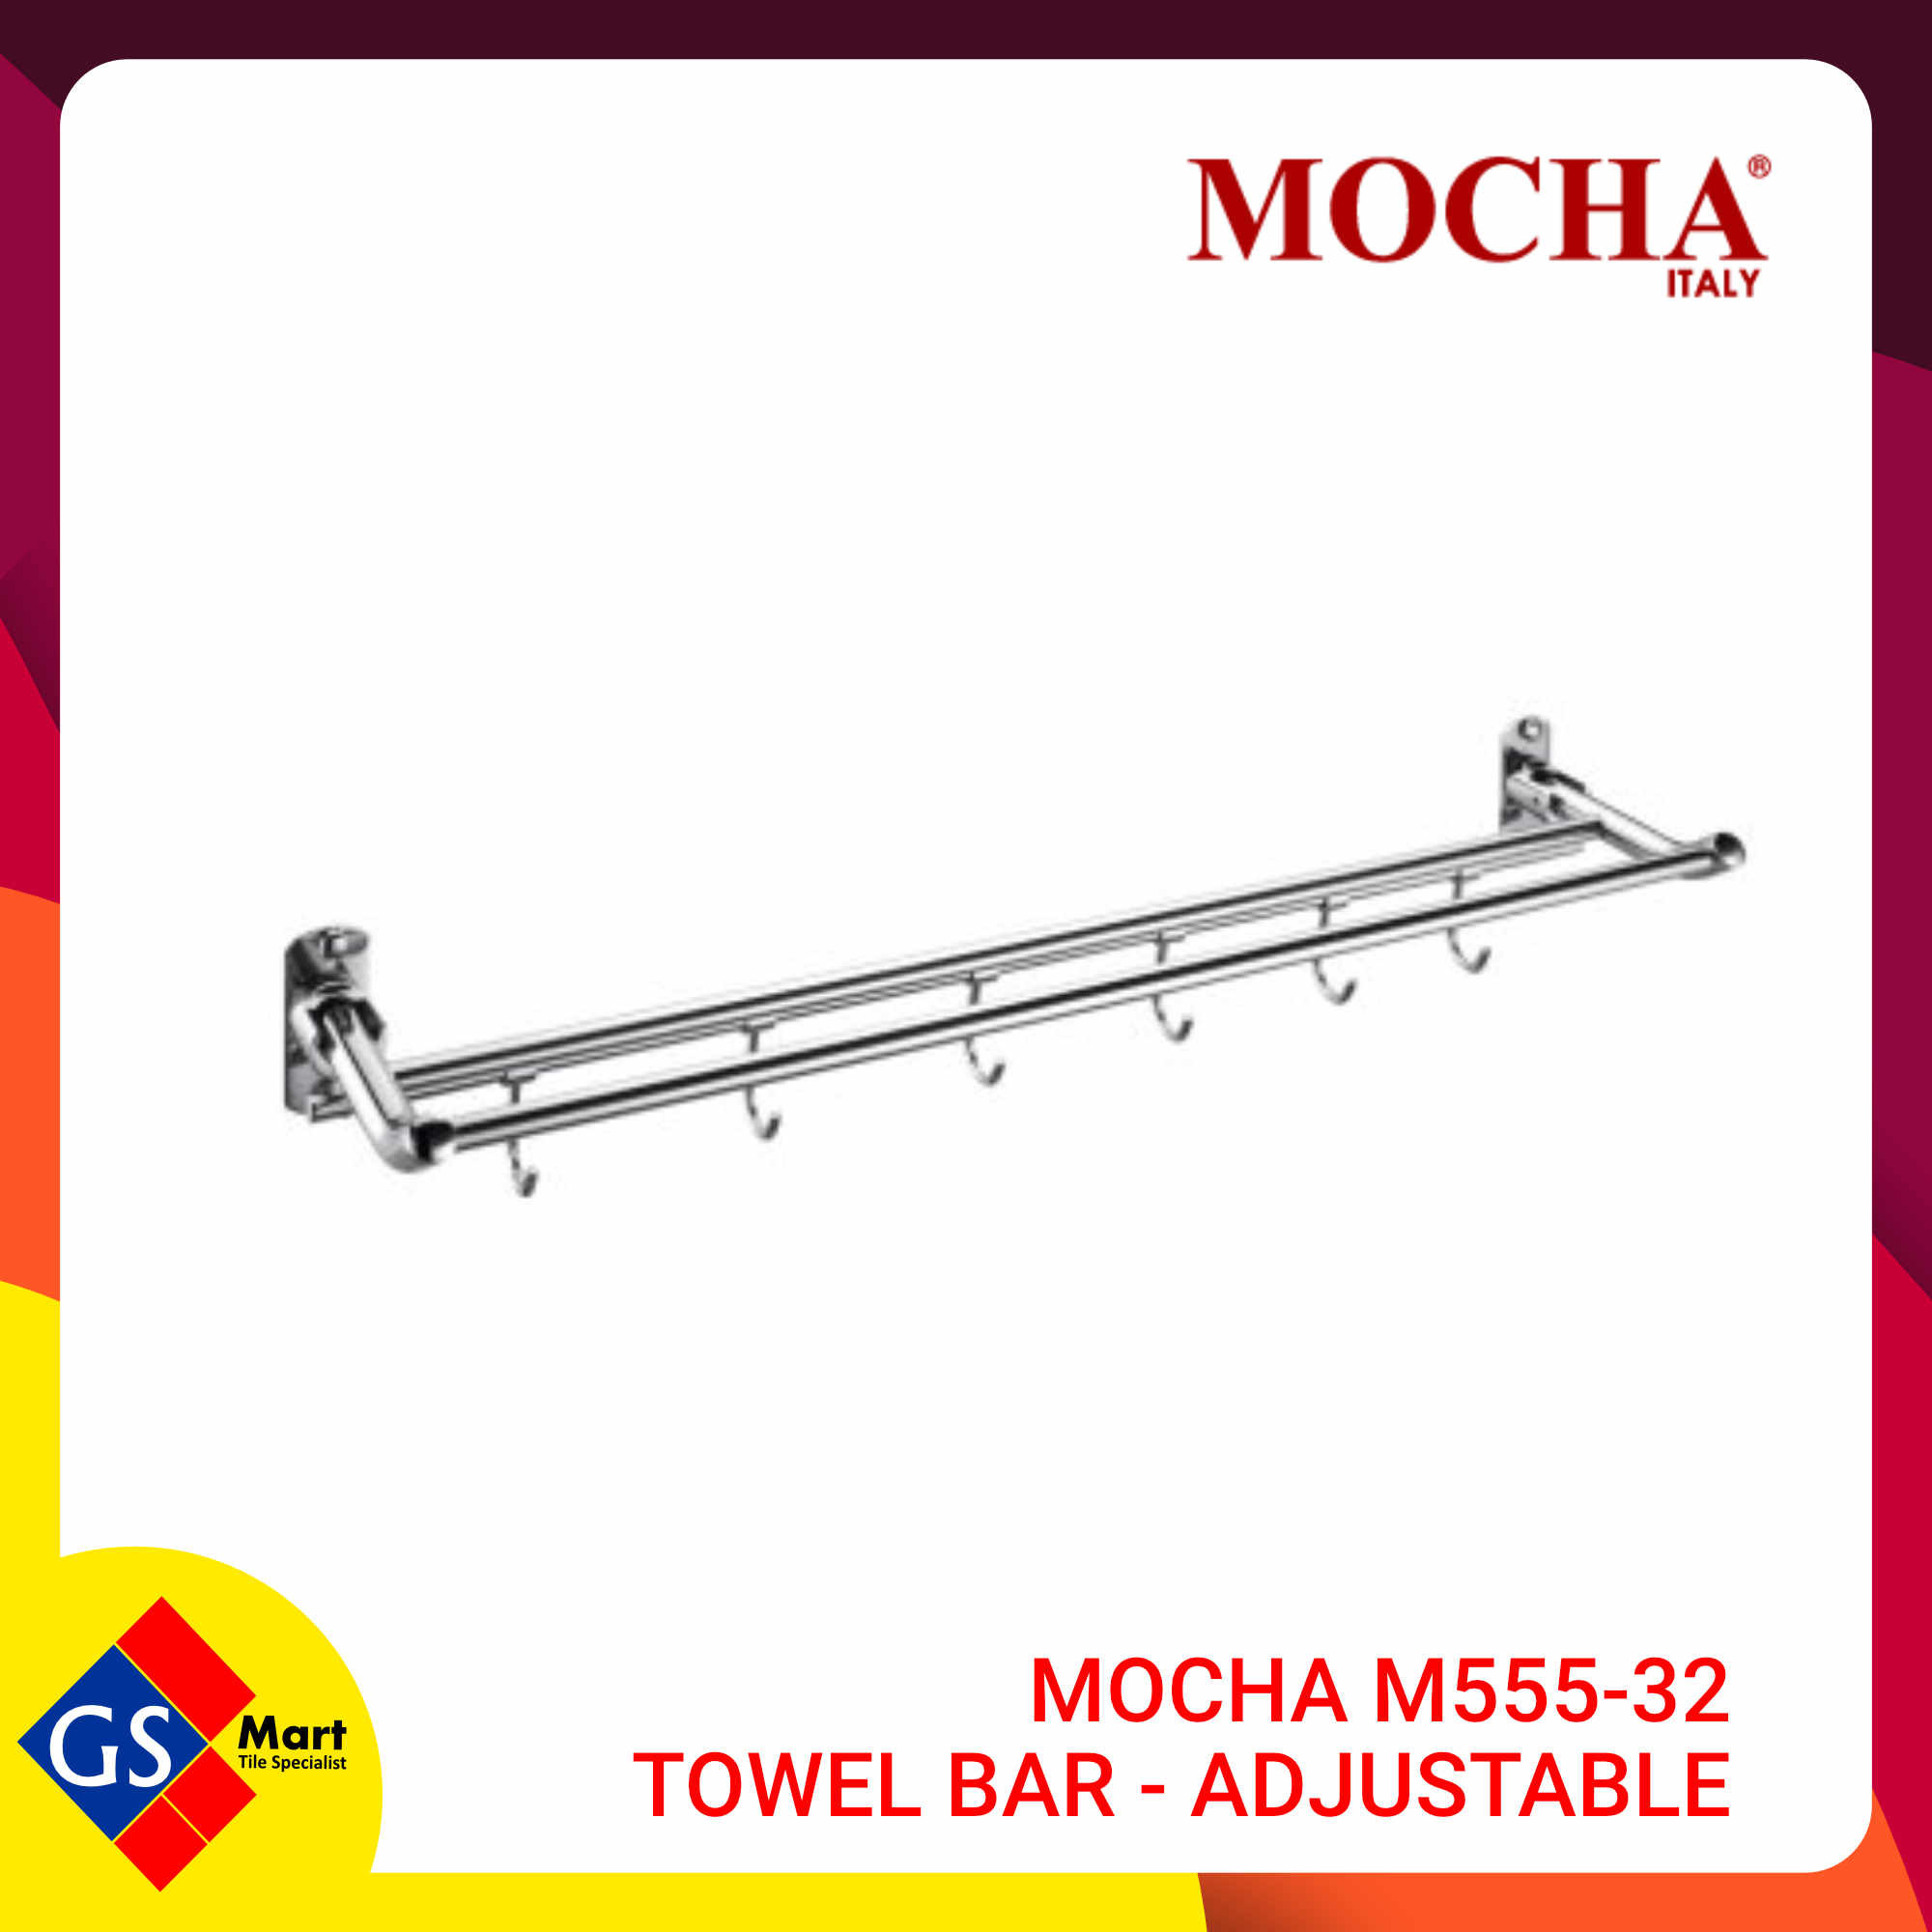 image of MOCHA M555-32 TOWEL BAR - Adjustable